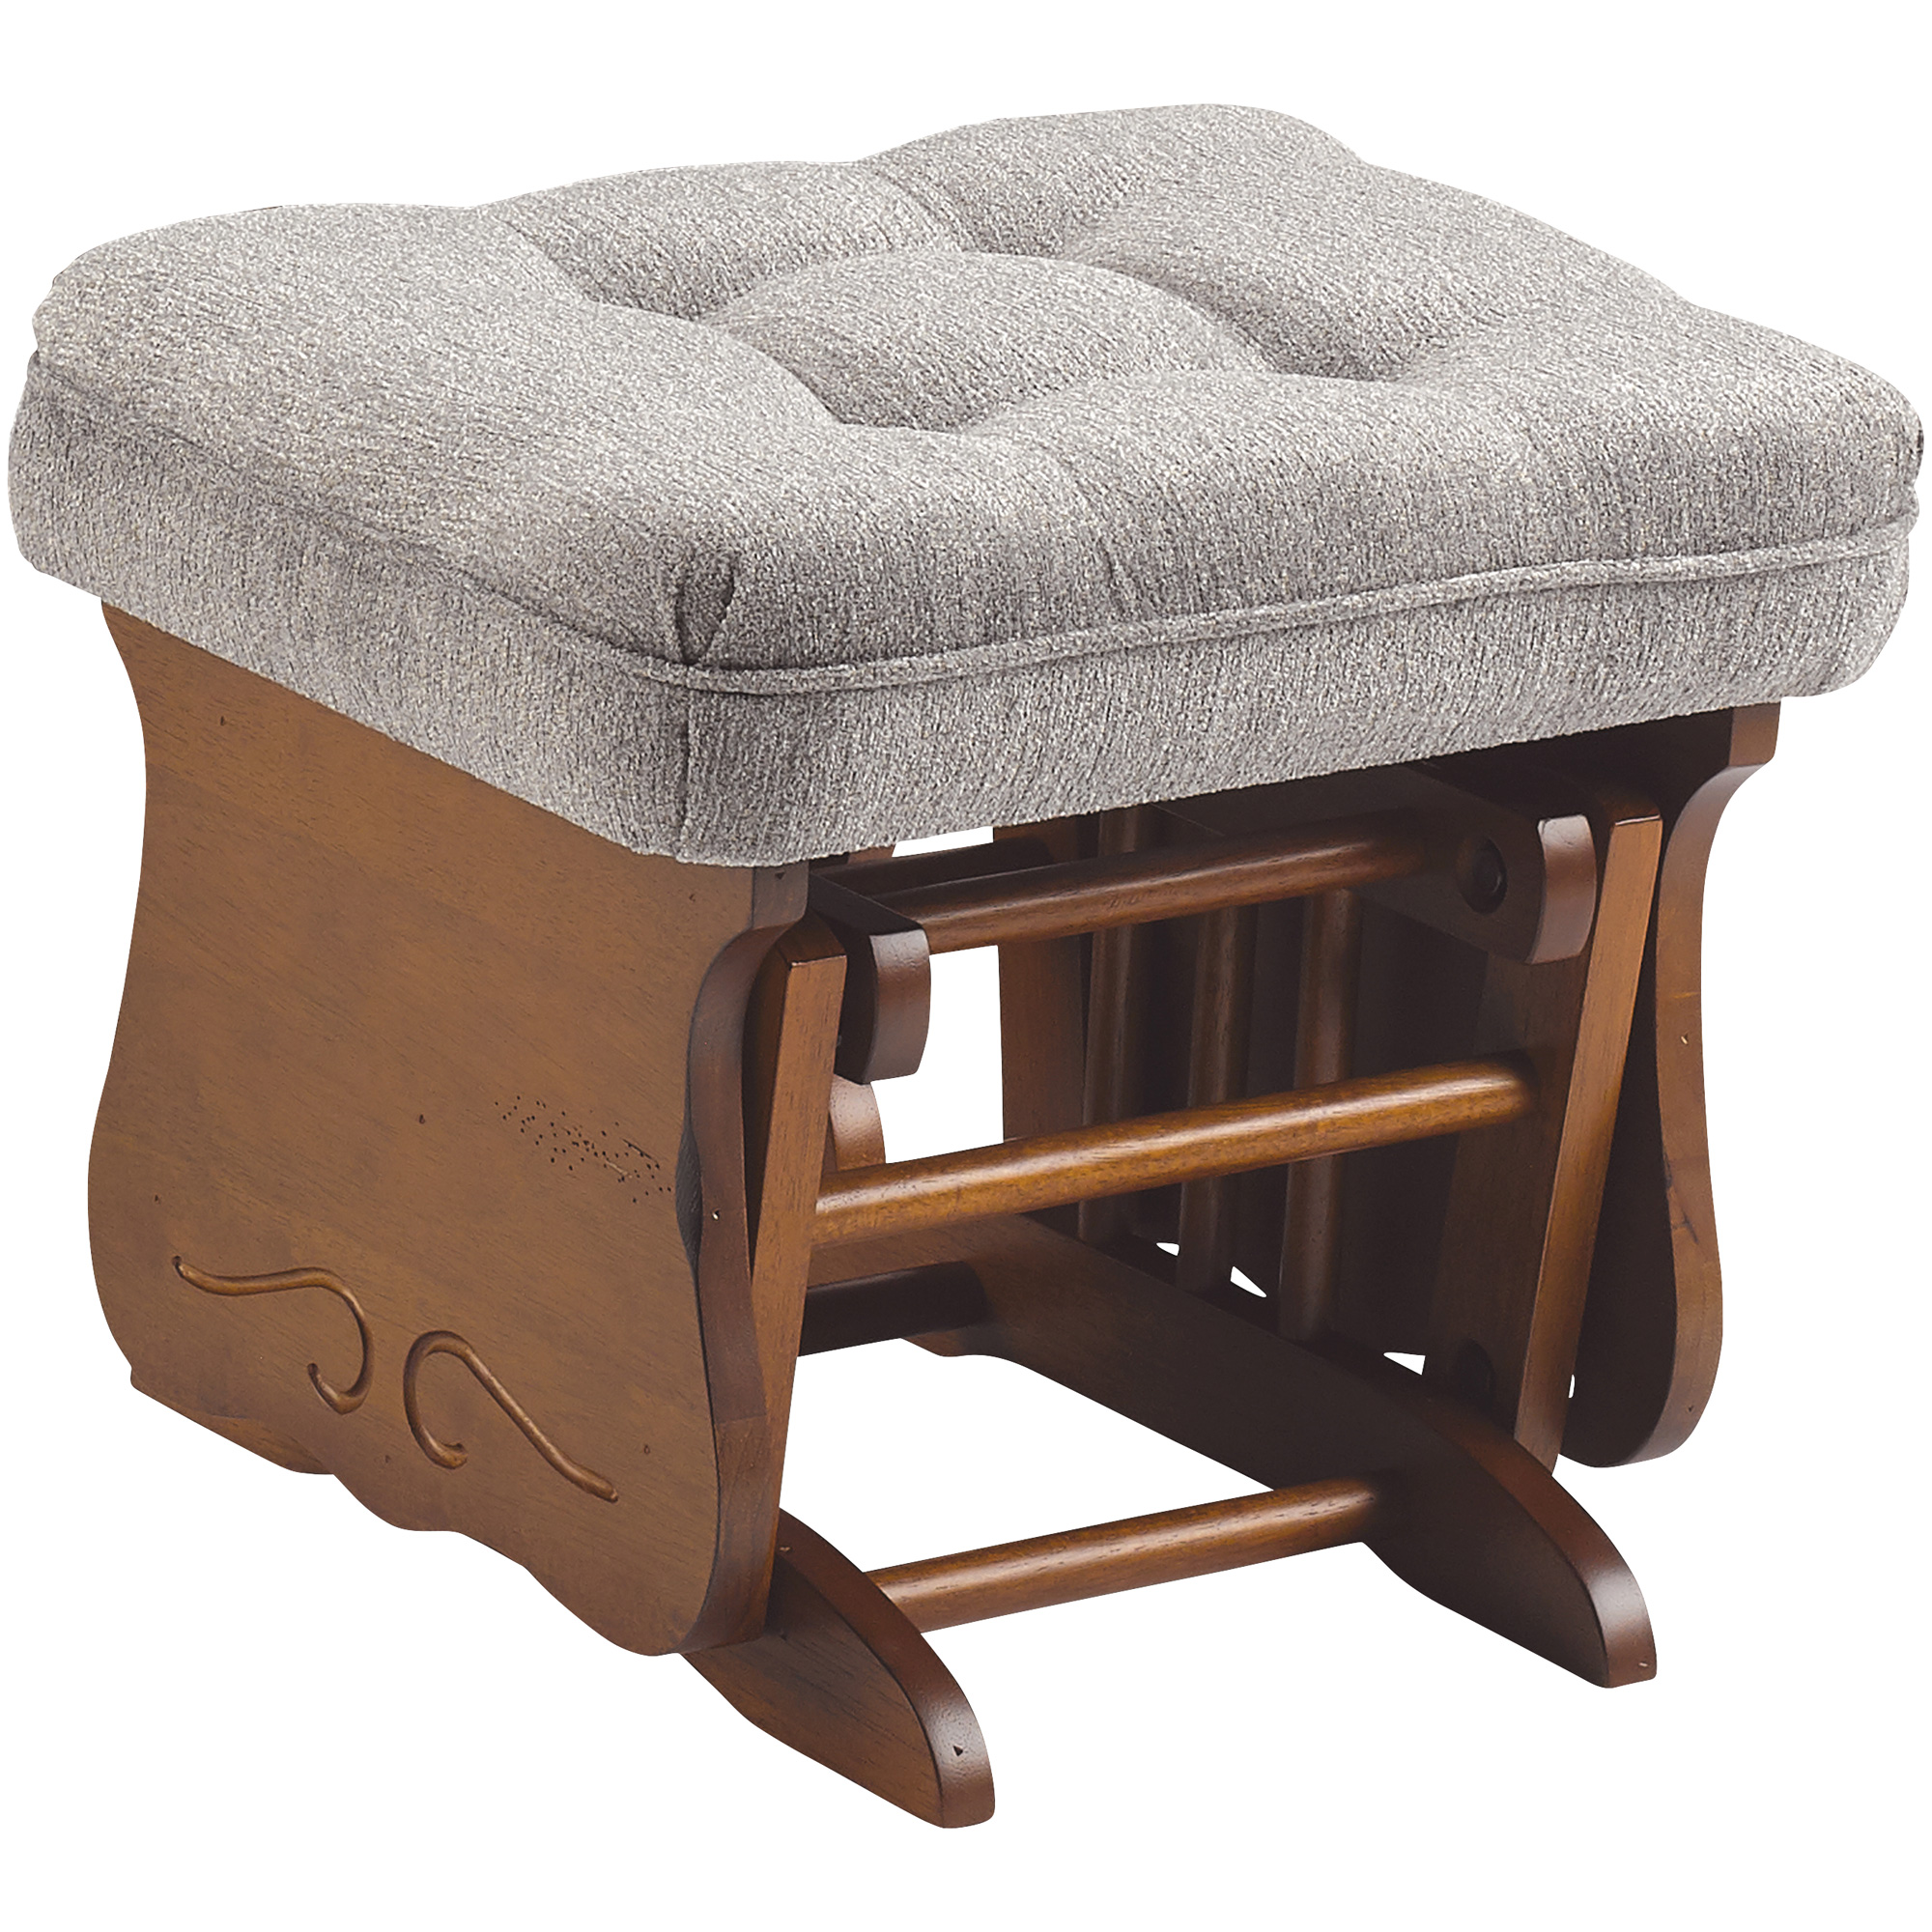 Best Home Furnishings | Giselle Spruce Glider Ottoman